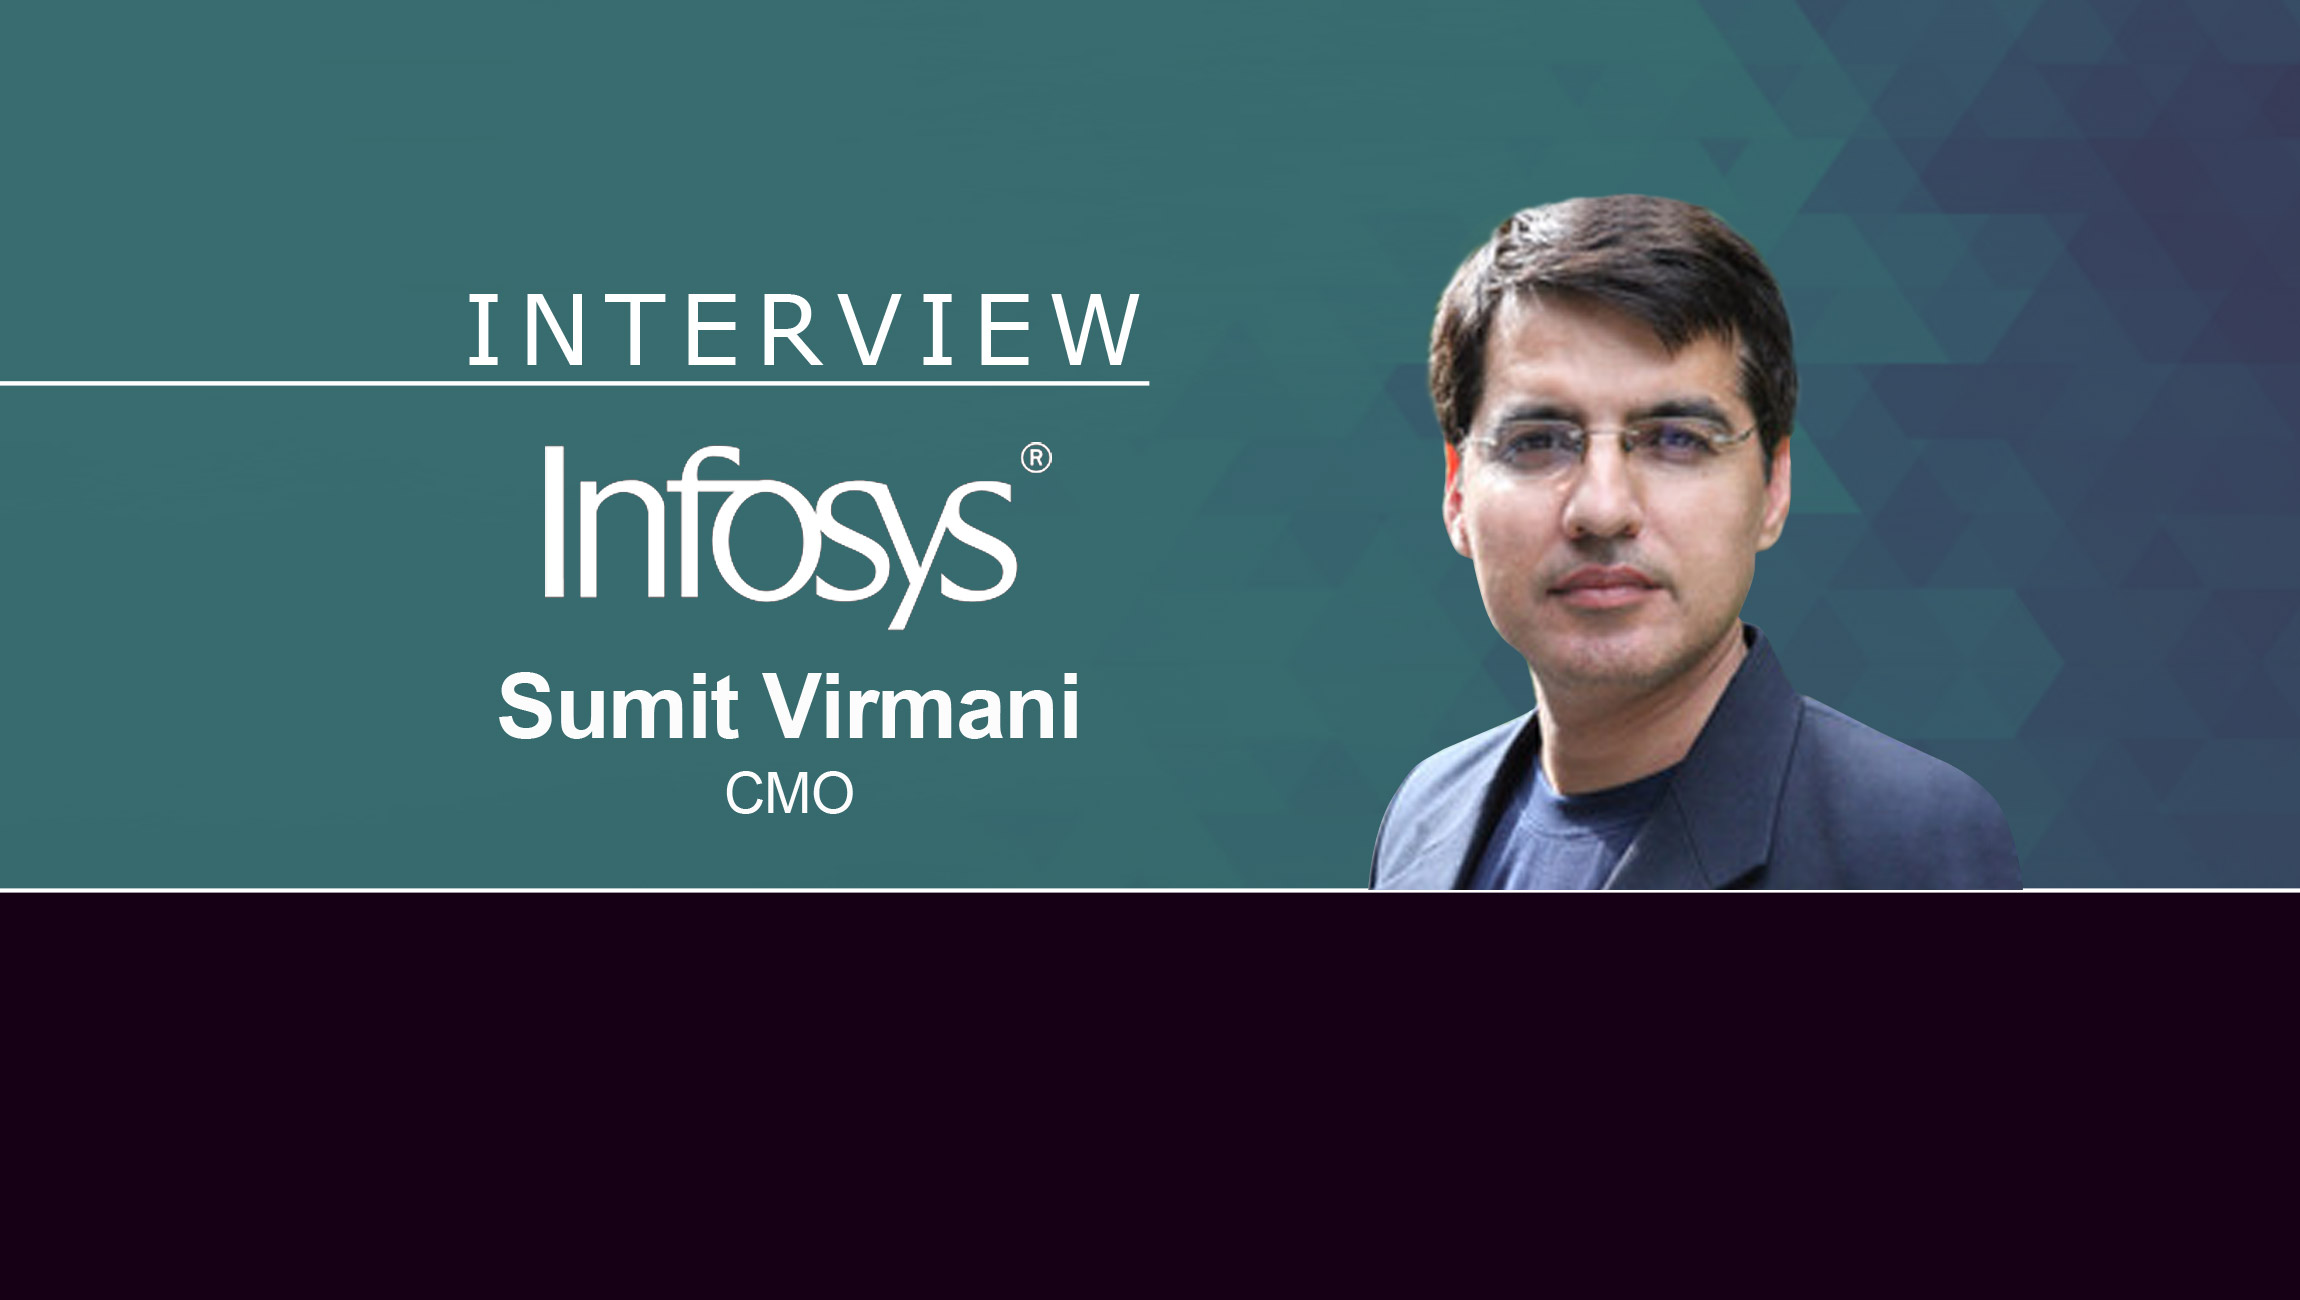 MarTech Series Interview with Sumit Virmani, Chief Marketing Officer at Infosys